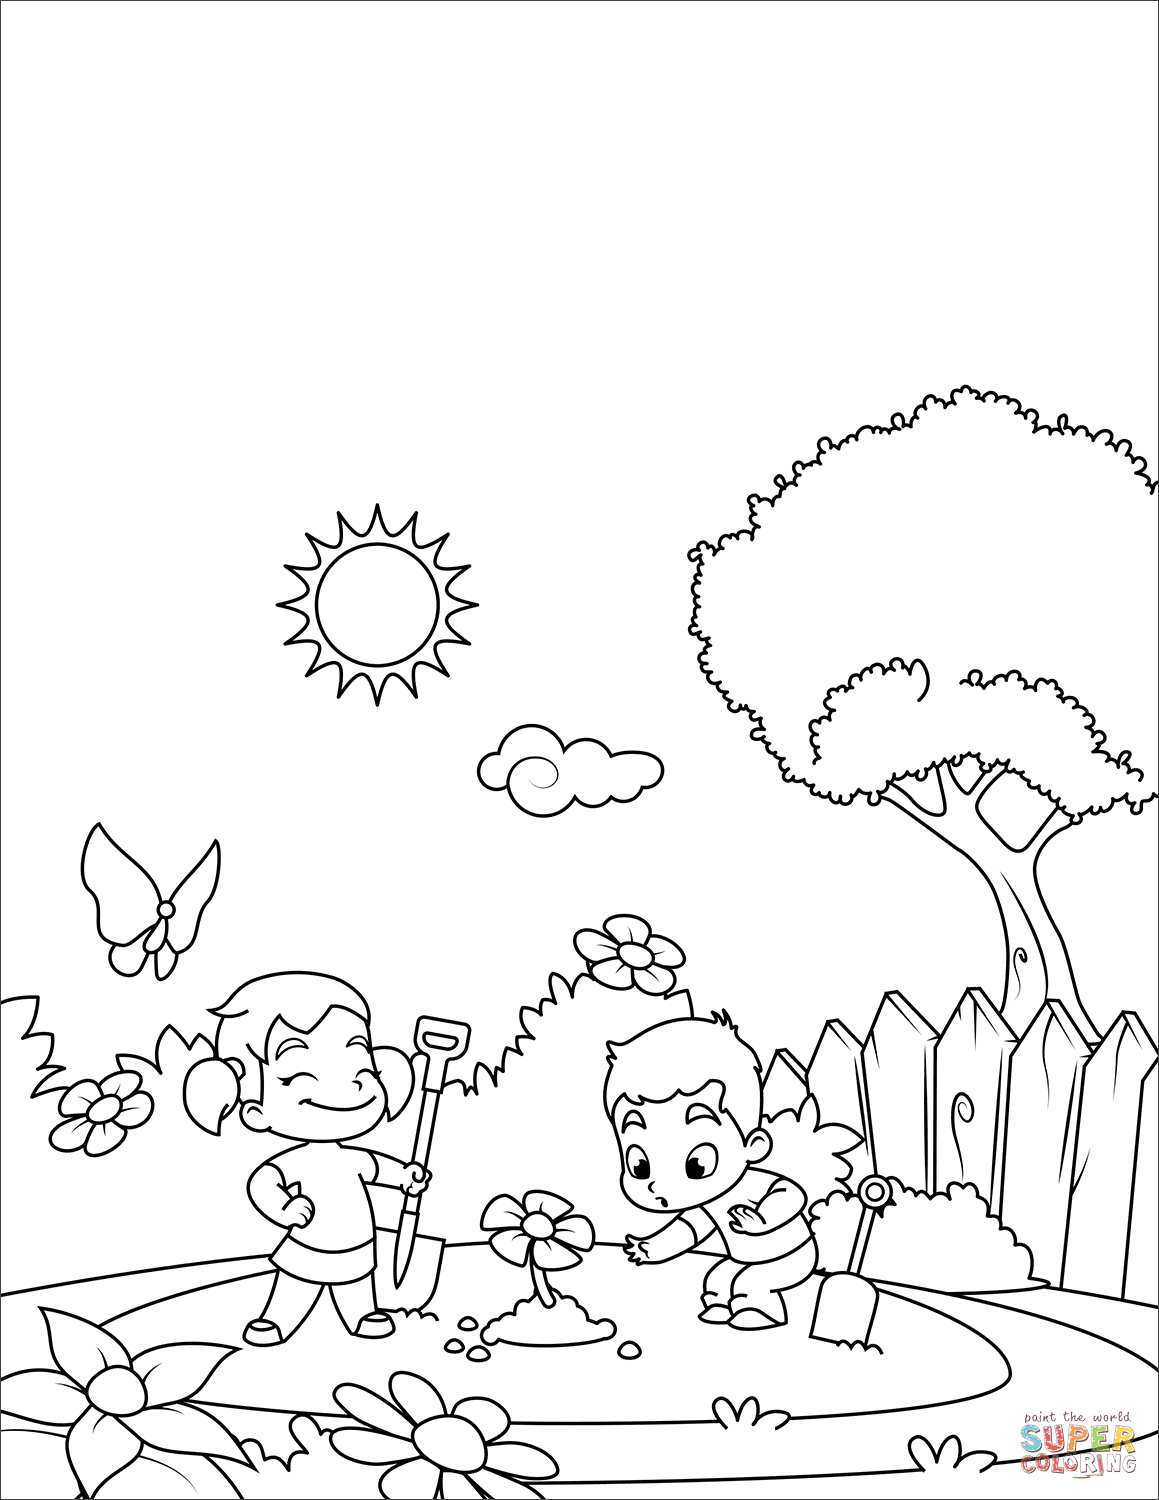 Boy And Girl Plant Flowers Coloring Page